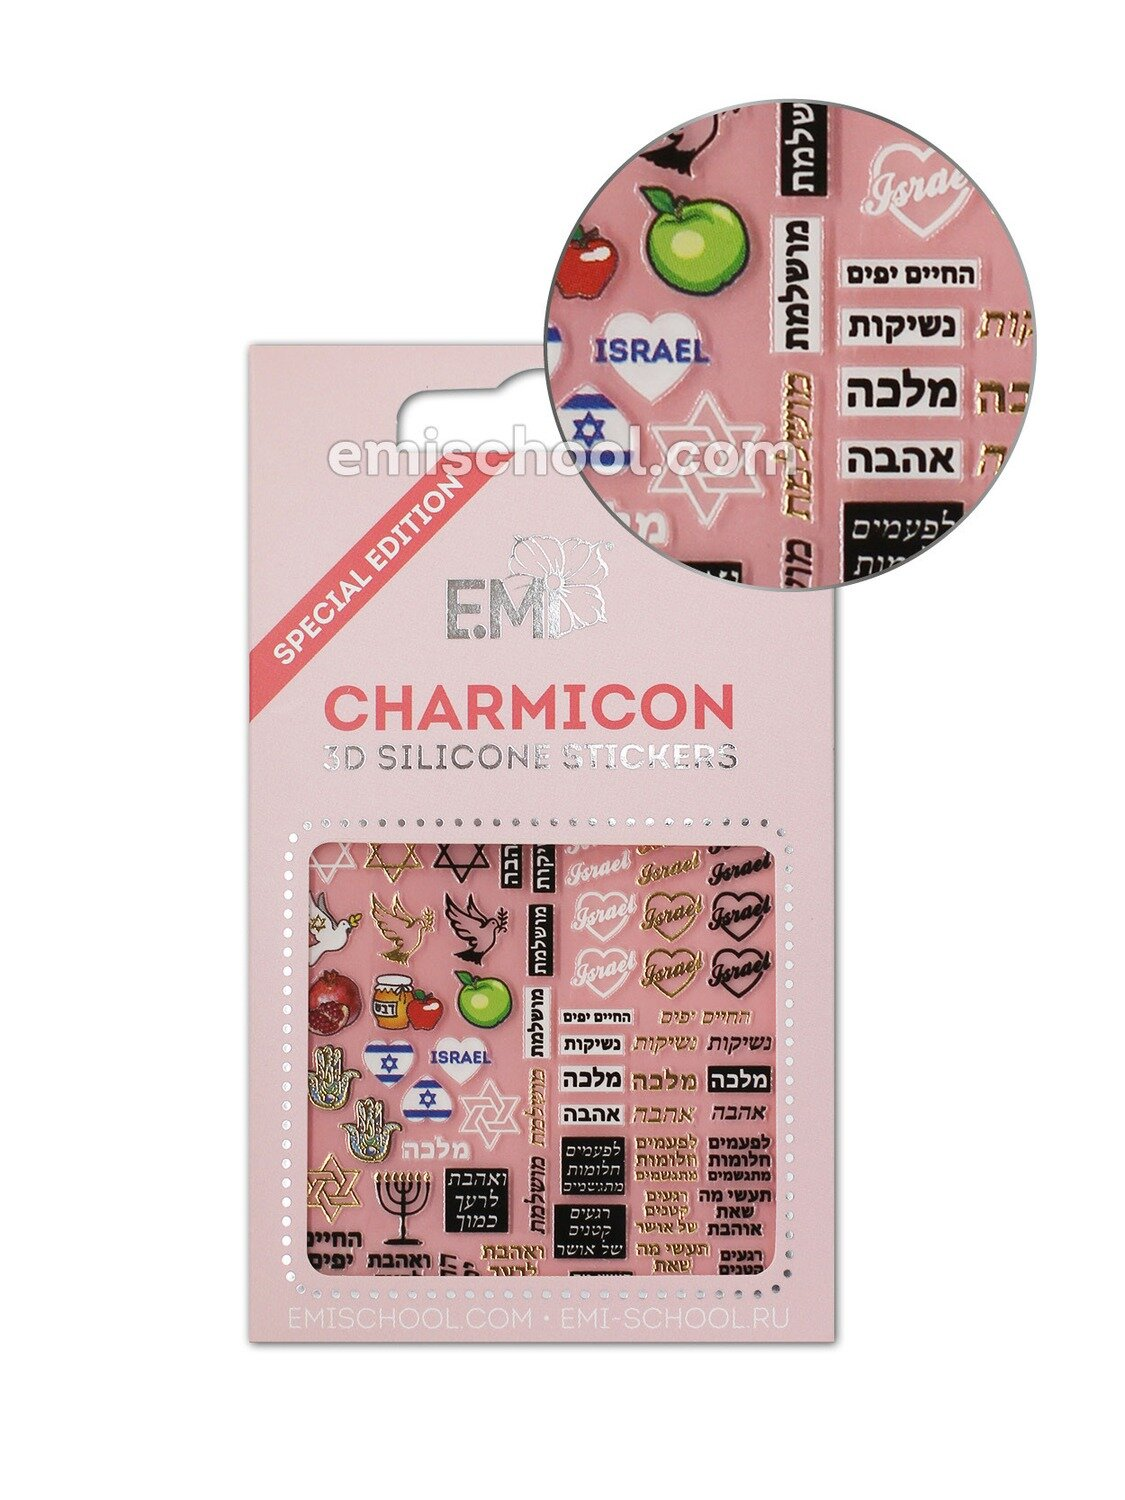 Charmicon 3D Silicone Stickers Israel